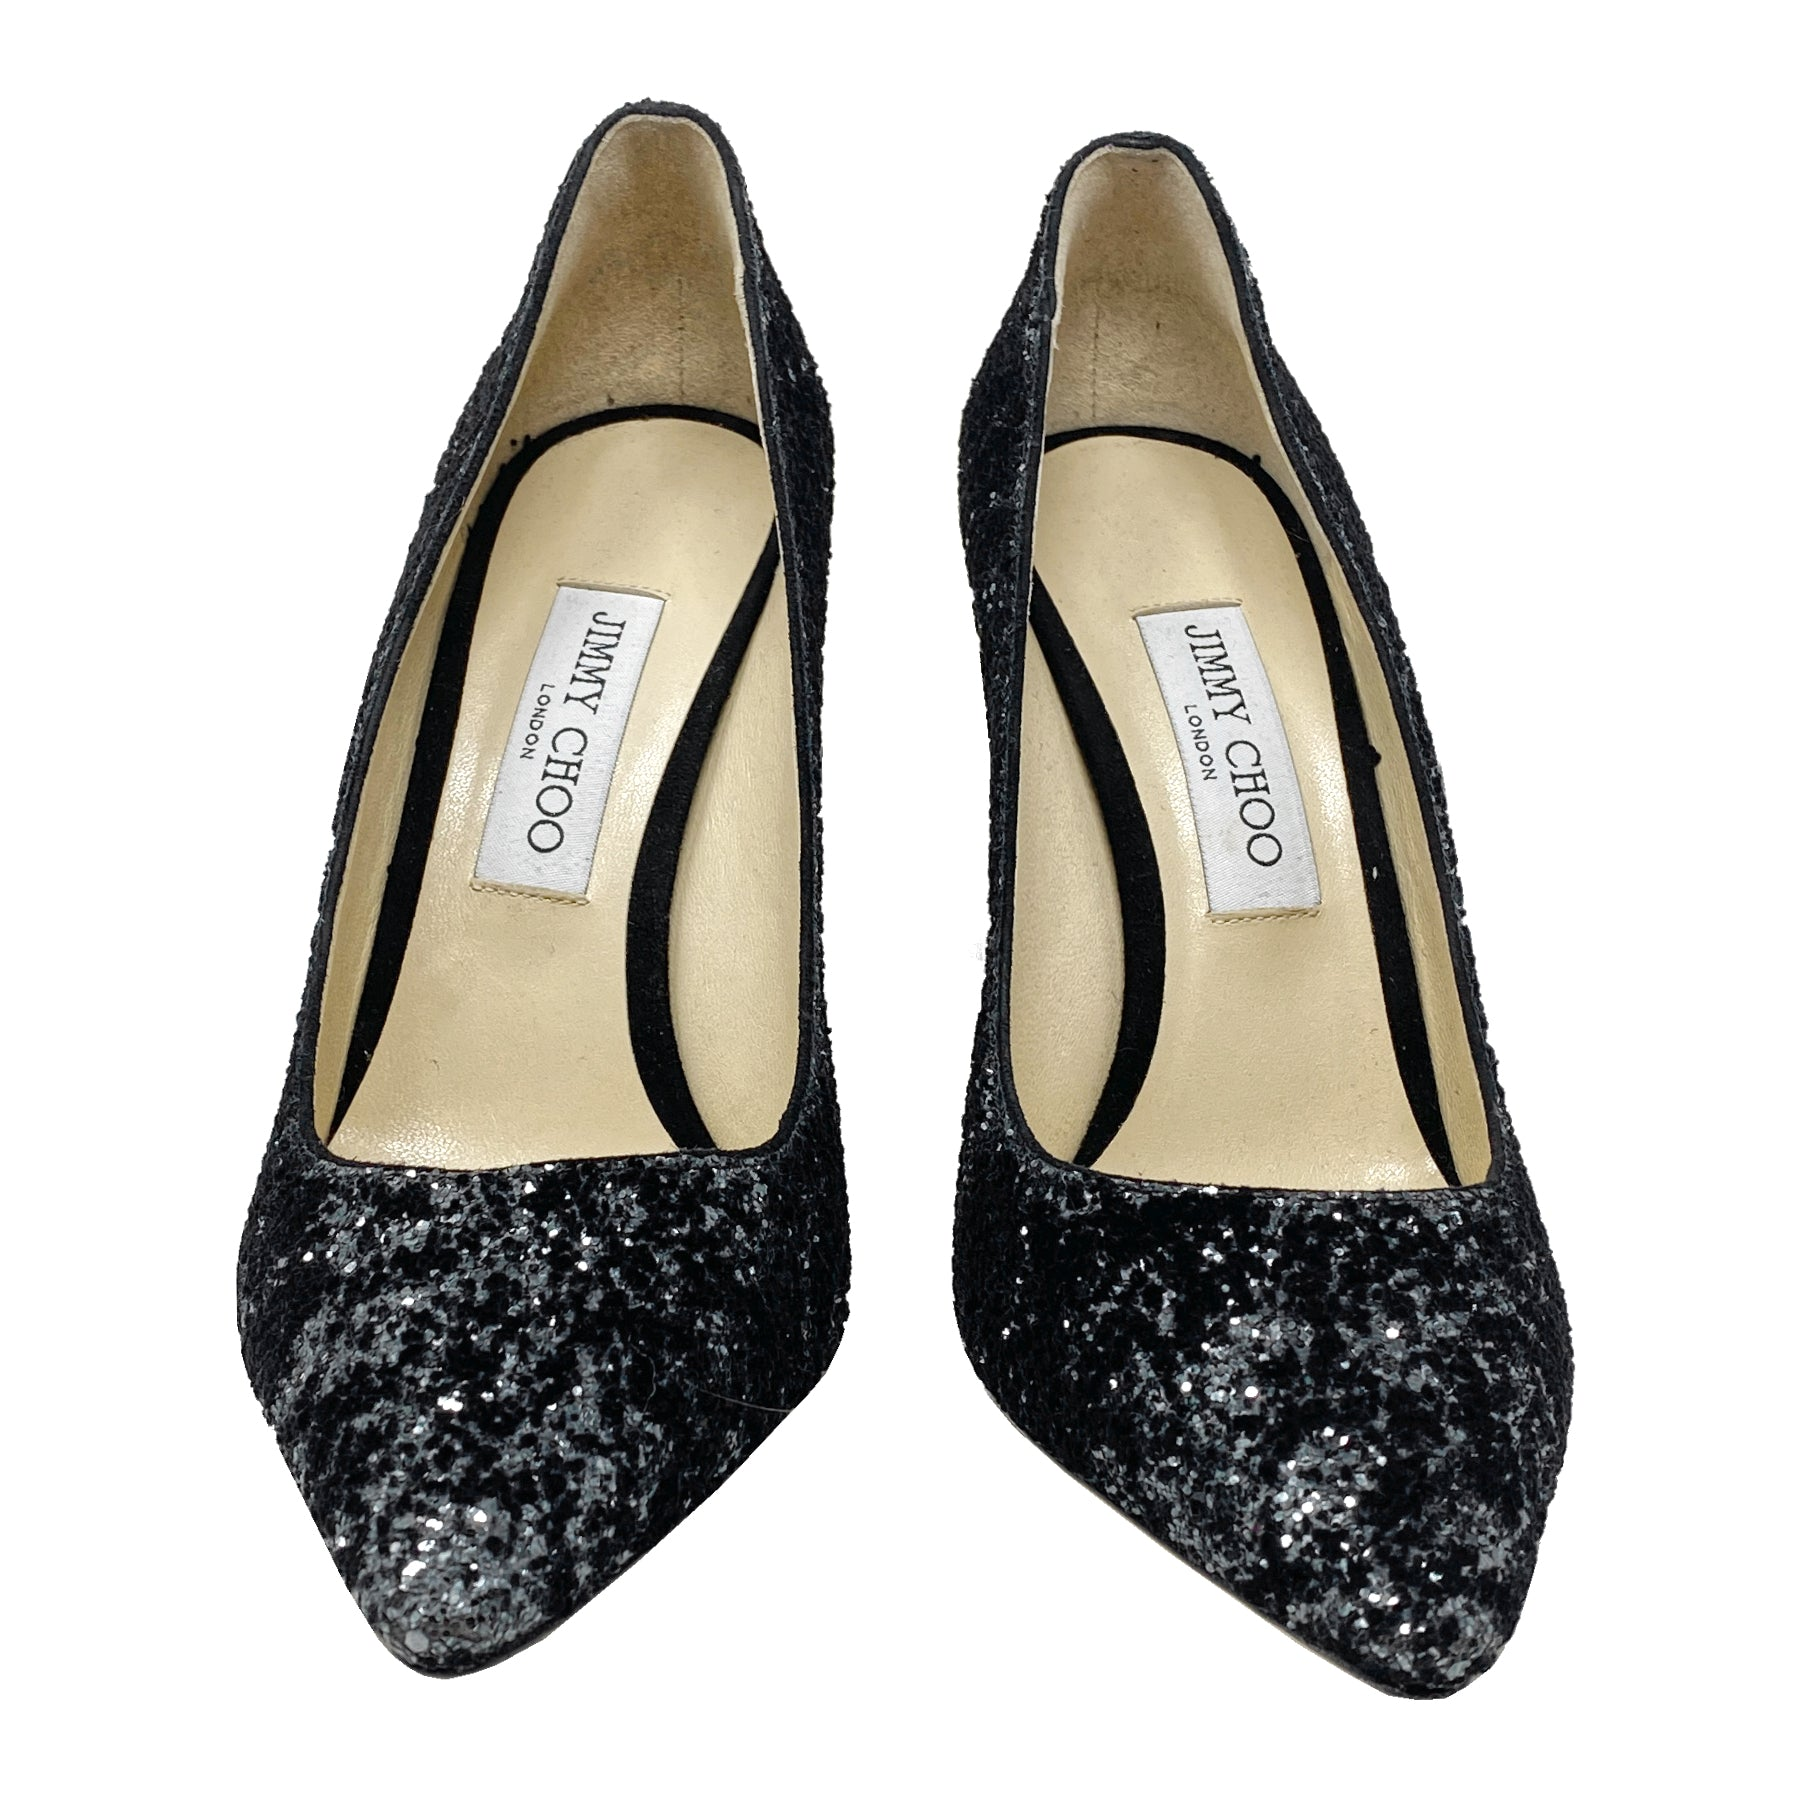 Jimmy Choo Romy 100 Glitter Pointed Pumps Size EU 40